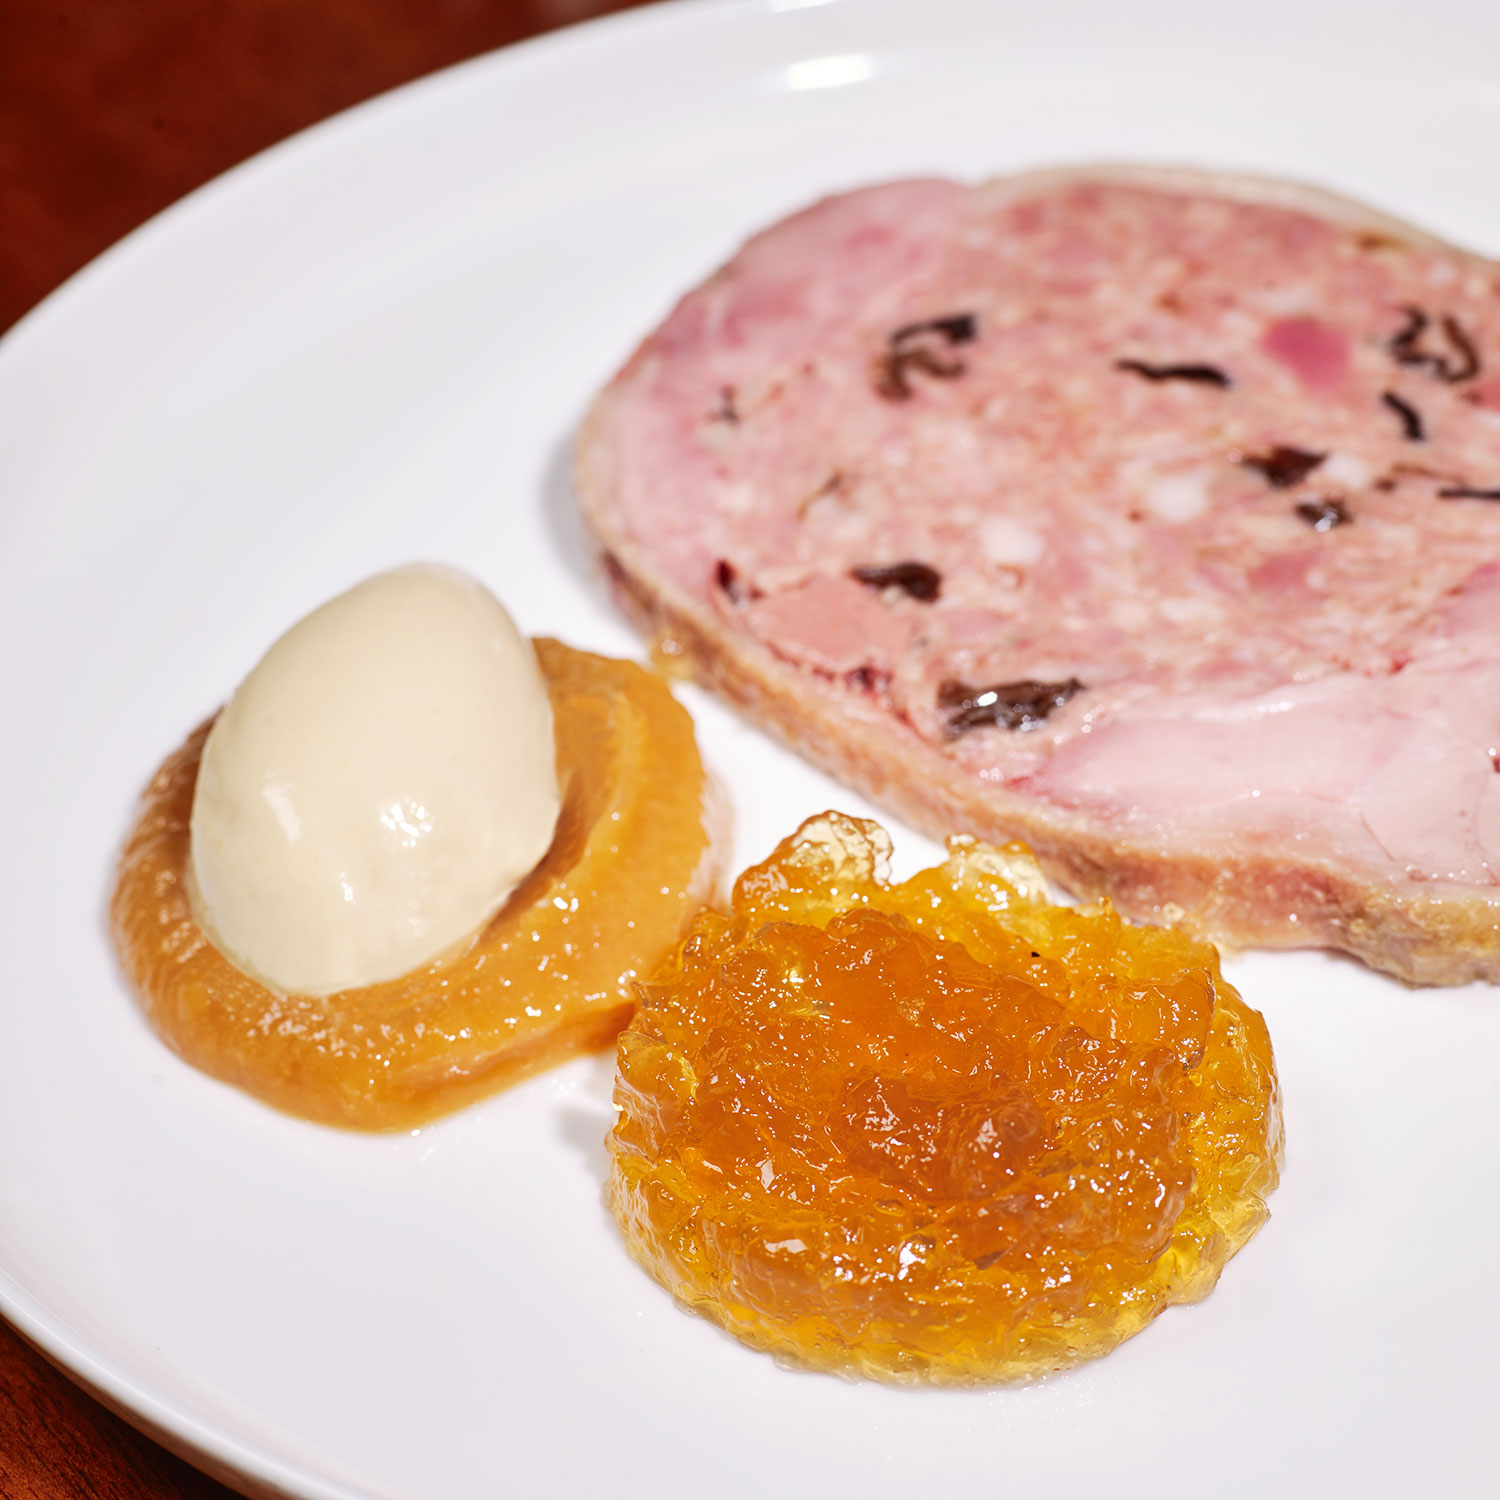 Dodine of duck served (warm), duck aspic, faux foie gras ice cream, spiced French toast, sweet and sour golden raisin purée